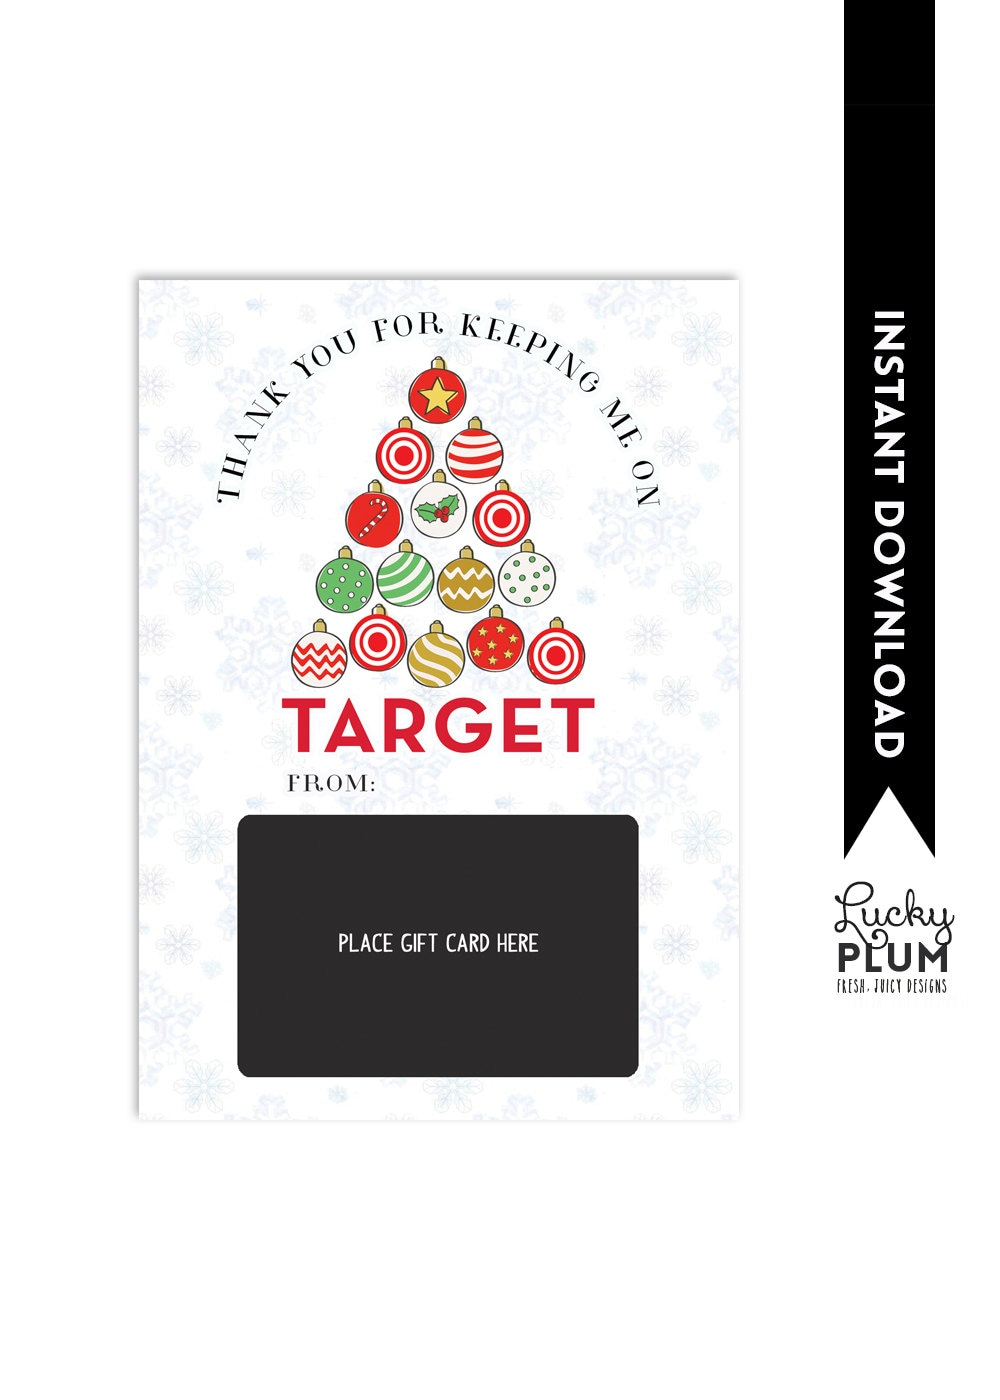 Free Target Gift Cards Online | Division of Global Affairs